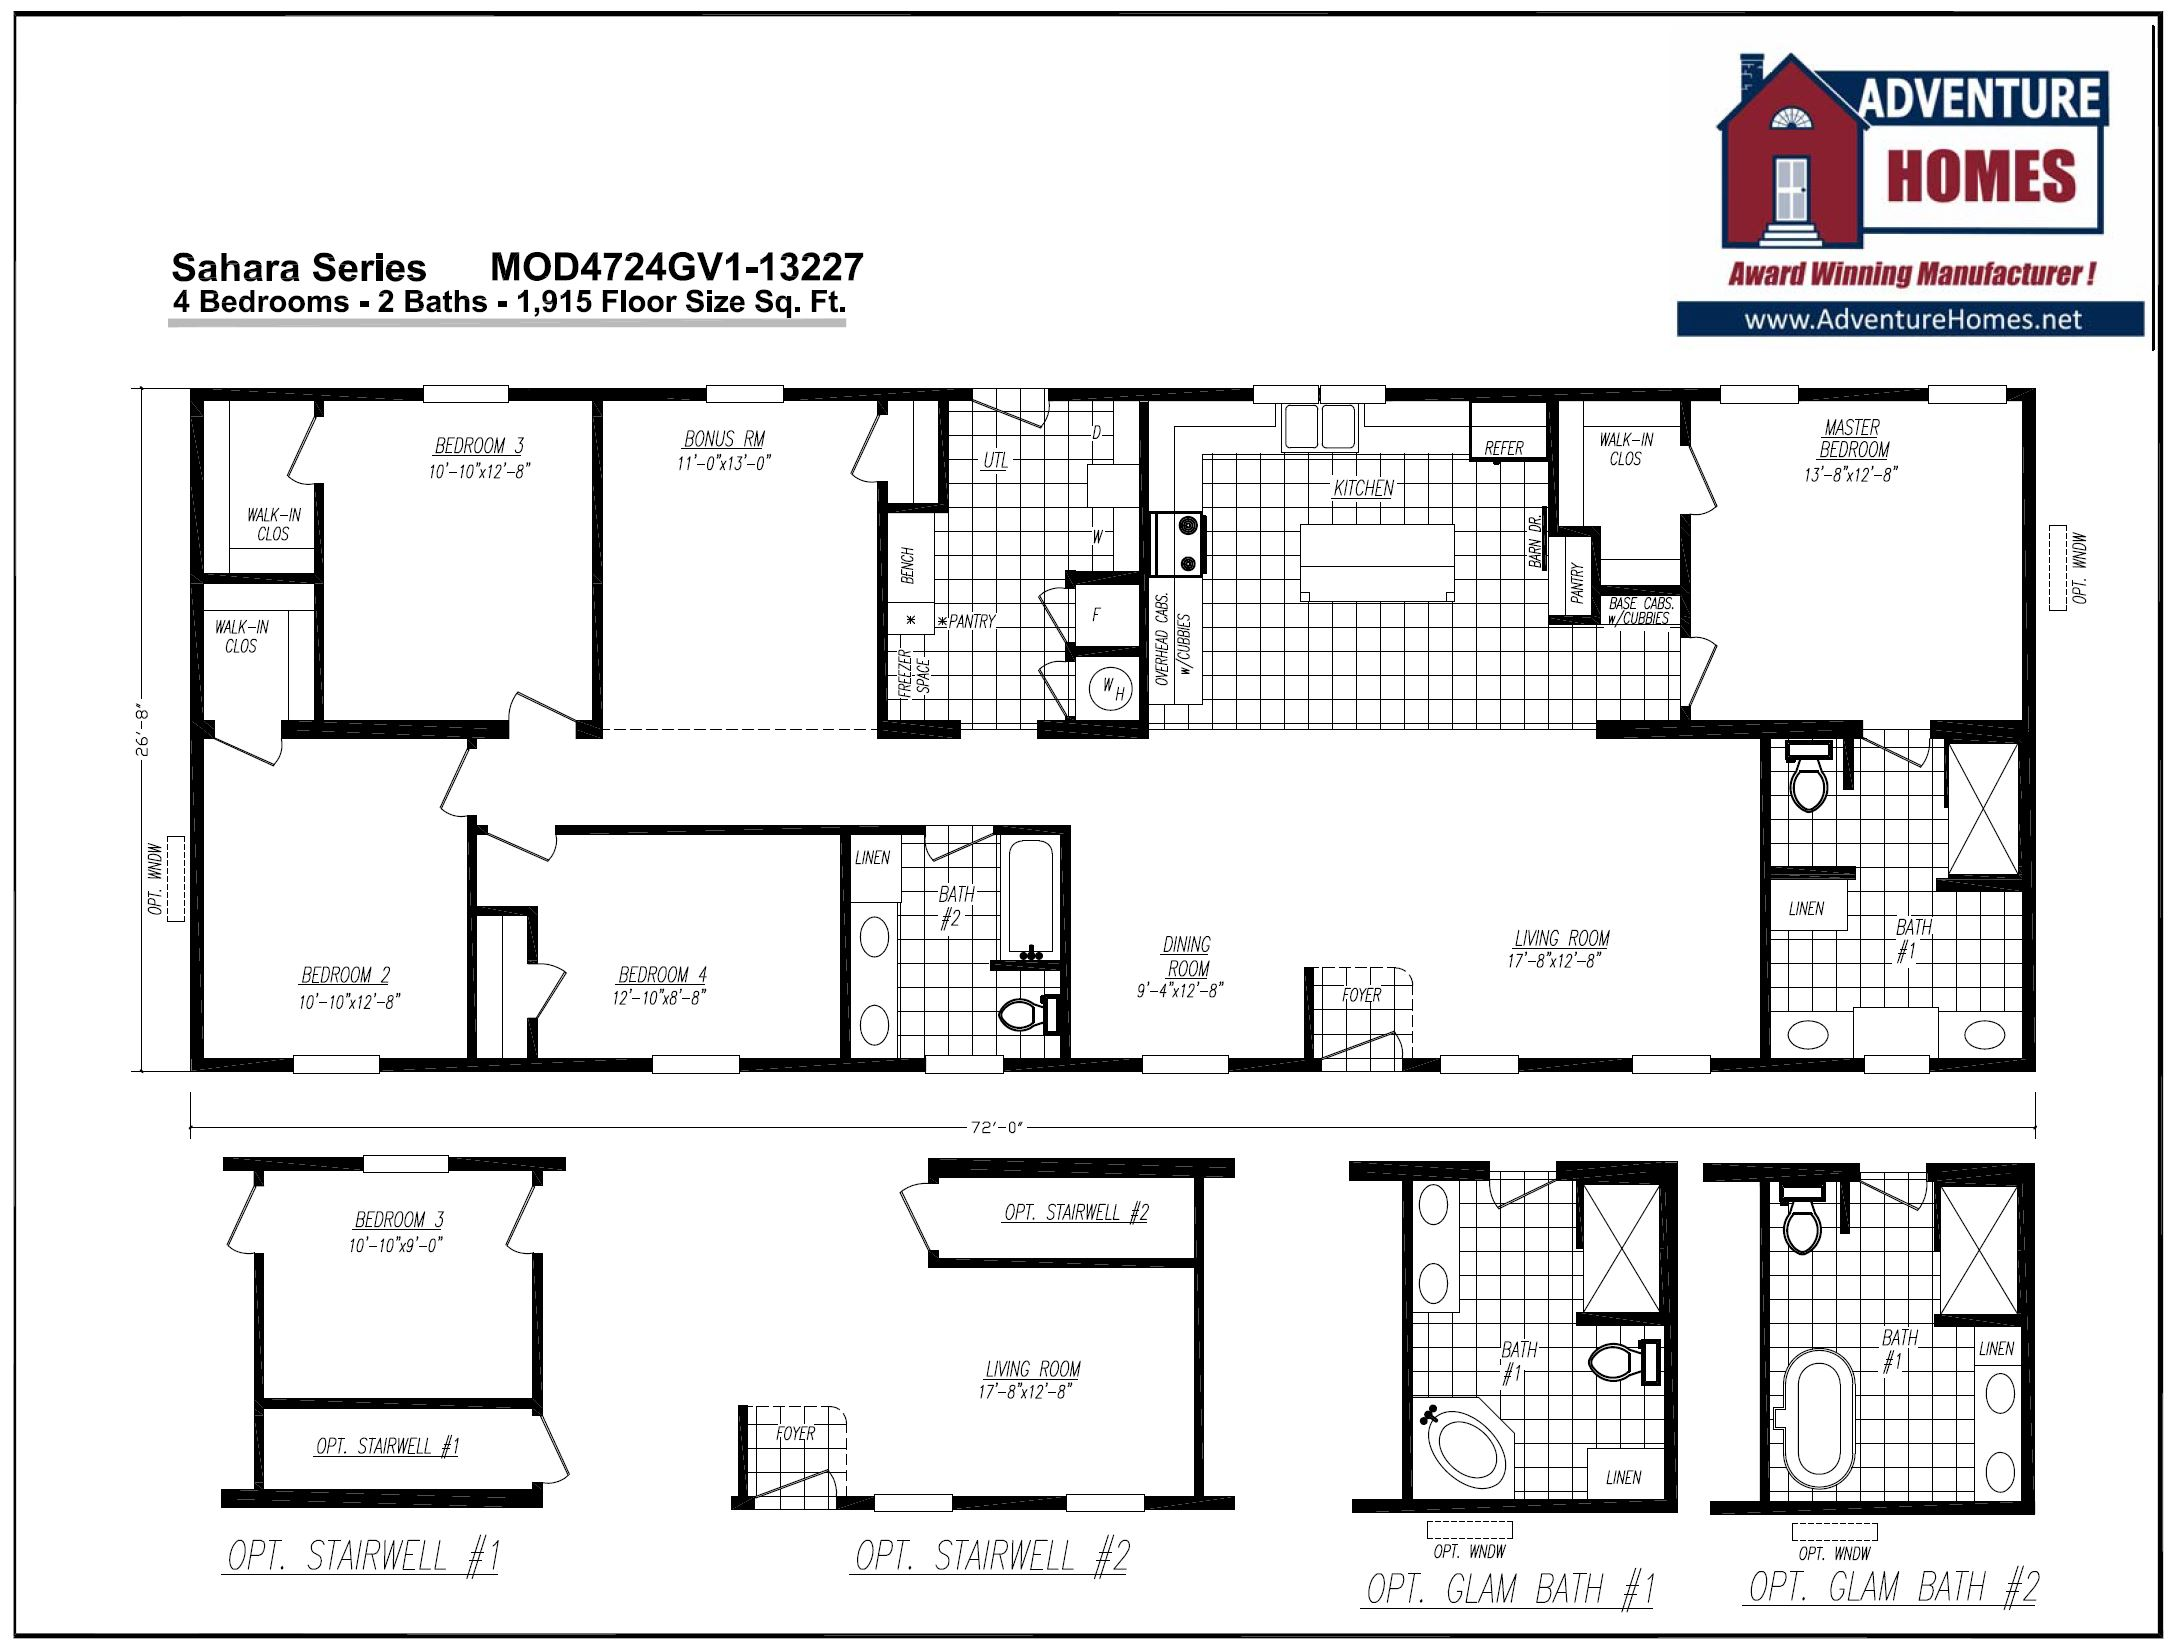 farmhouse breeze modular home floorplan